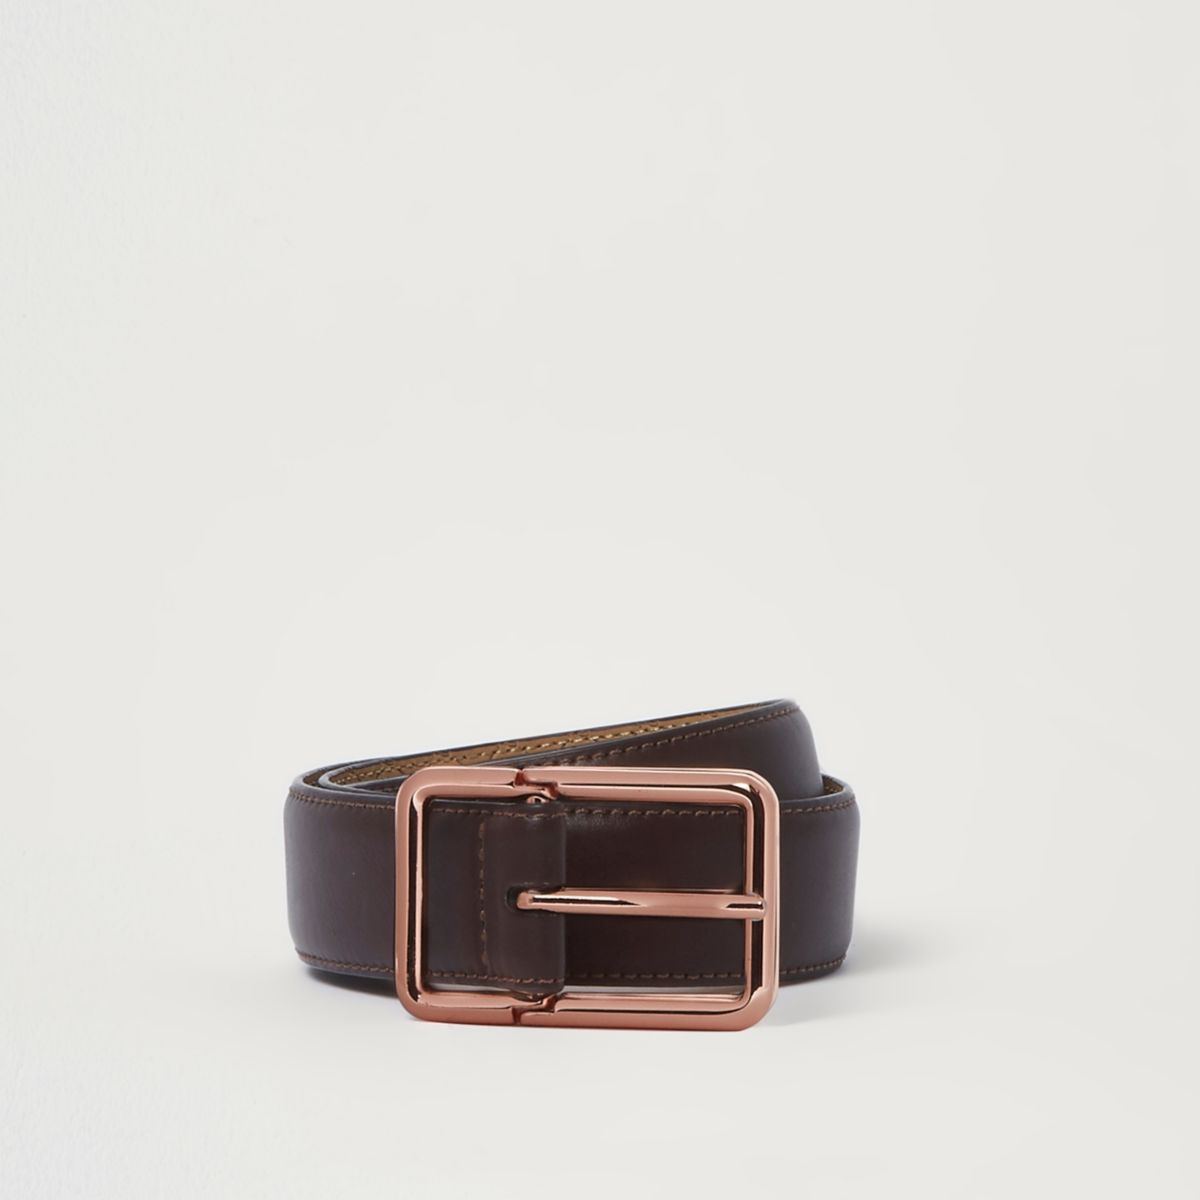 Brown rose gold tone buckle belt